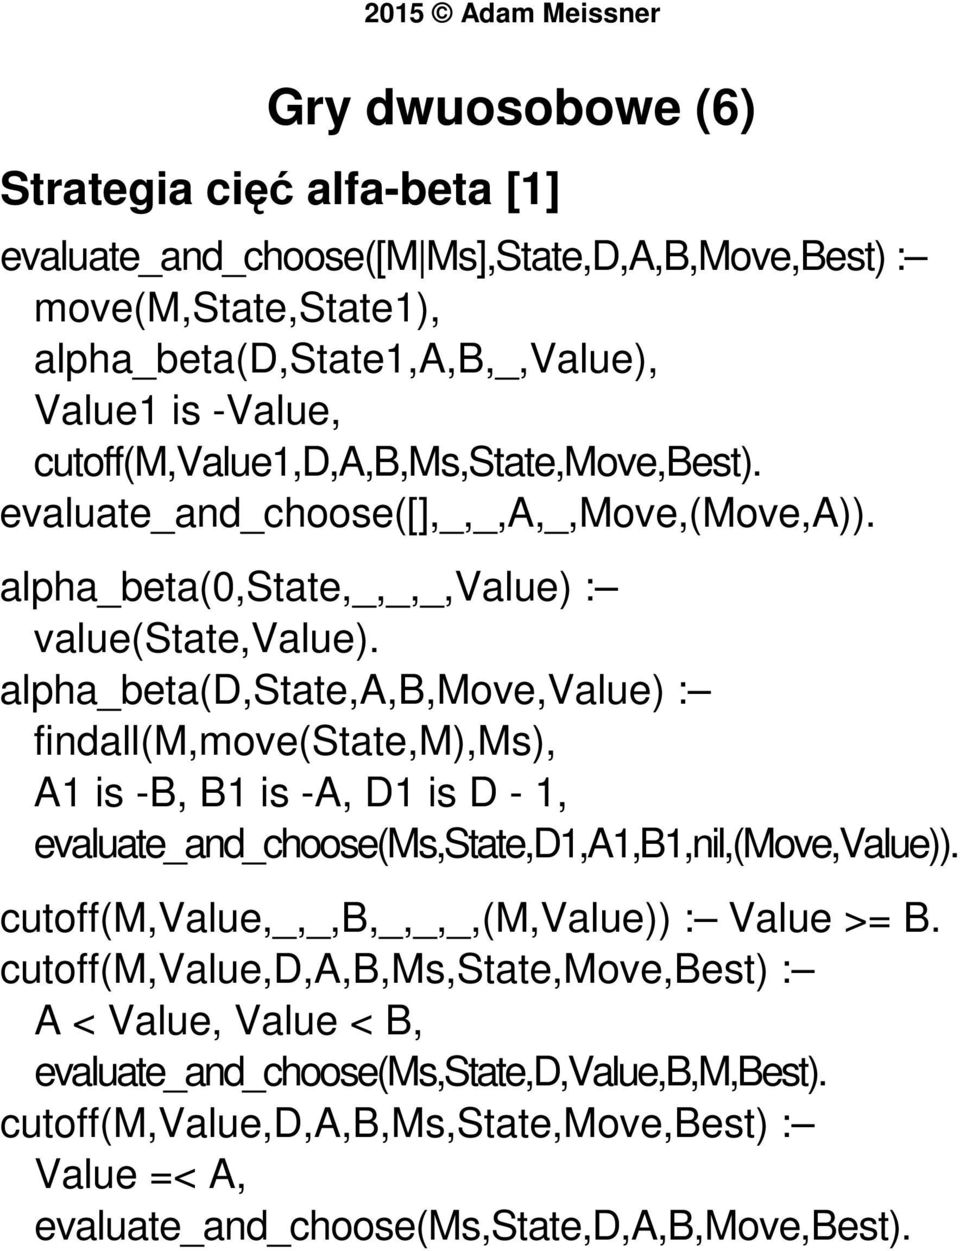 alpha_beta(d,state,a,b,move,value) : findall(m,move(state,m),ms), A1 is -B, B1 is -A, D1 is D - 1, evaluate_and_choose(ms,state,d1,a1,b1,nil,(move,value)).